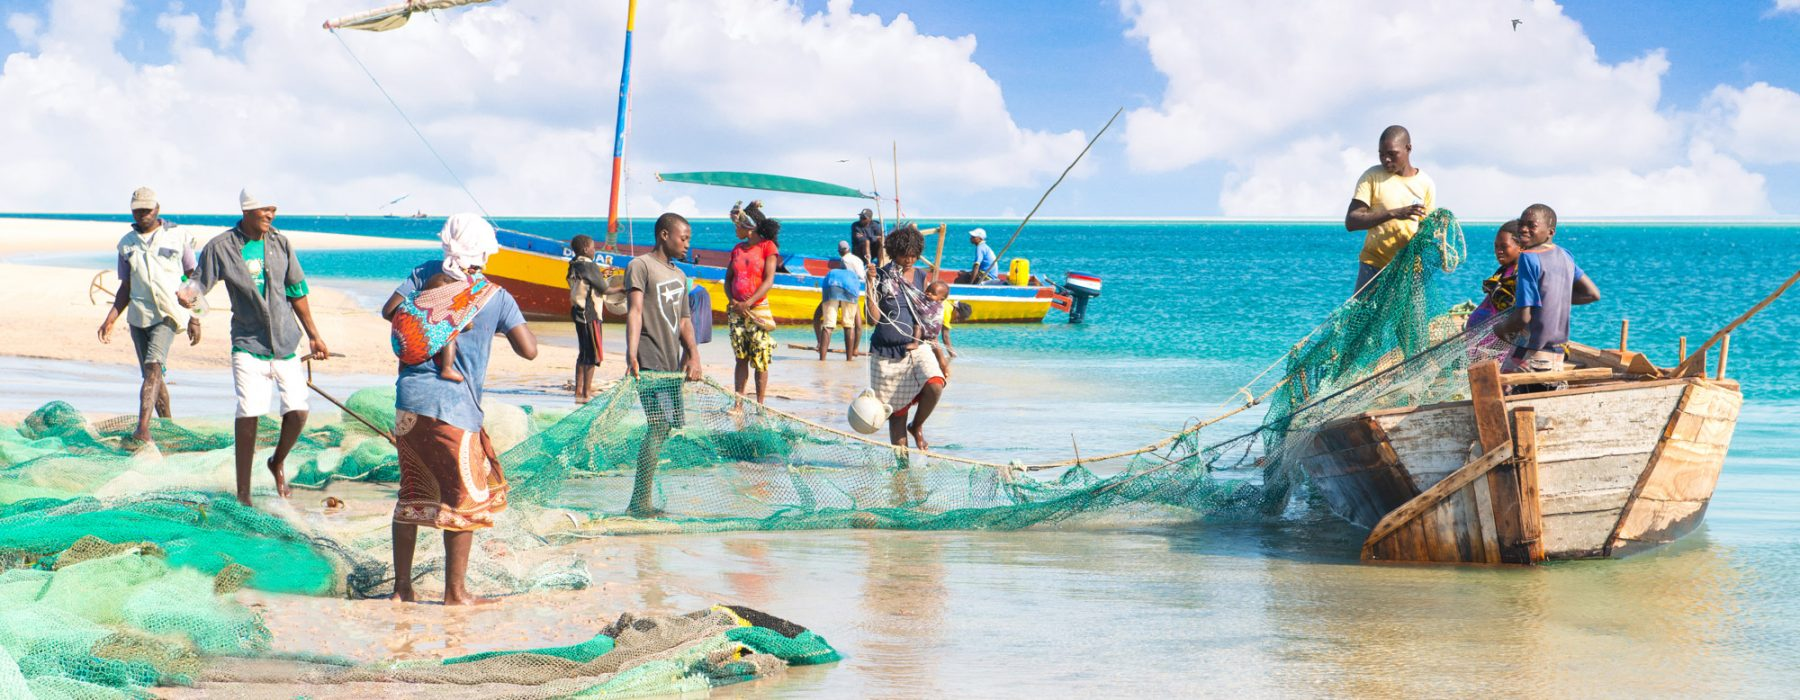 Bazaruto archipelago: a fisherman's life in the wilderness